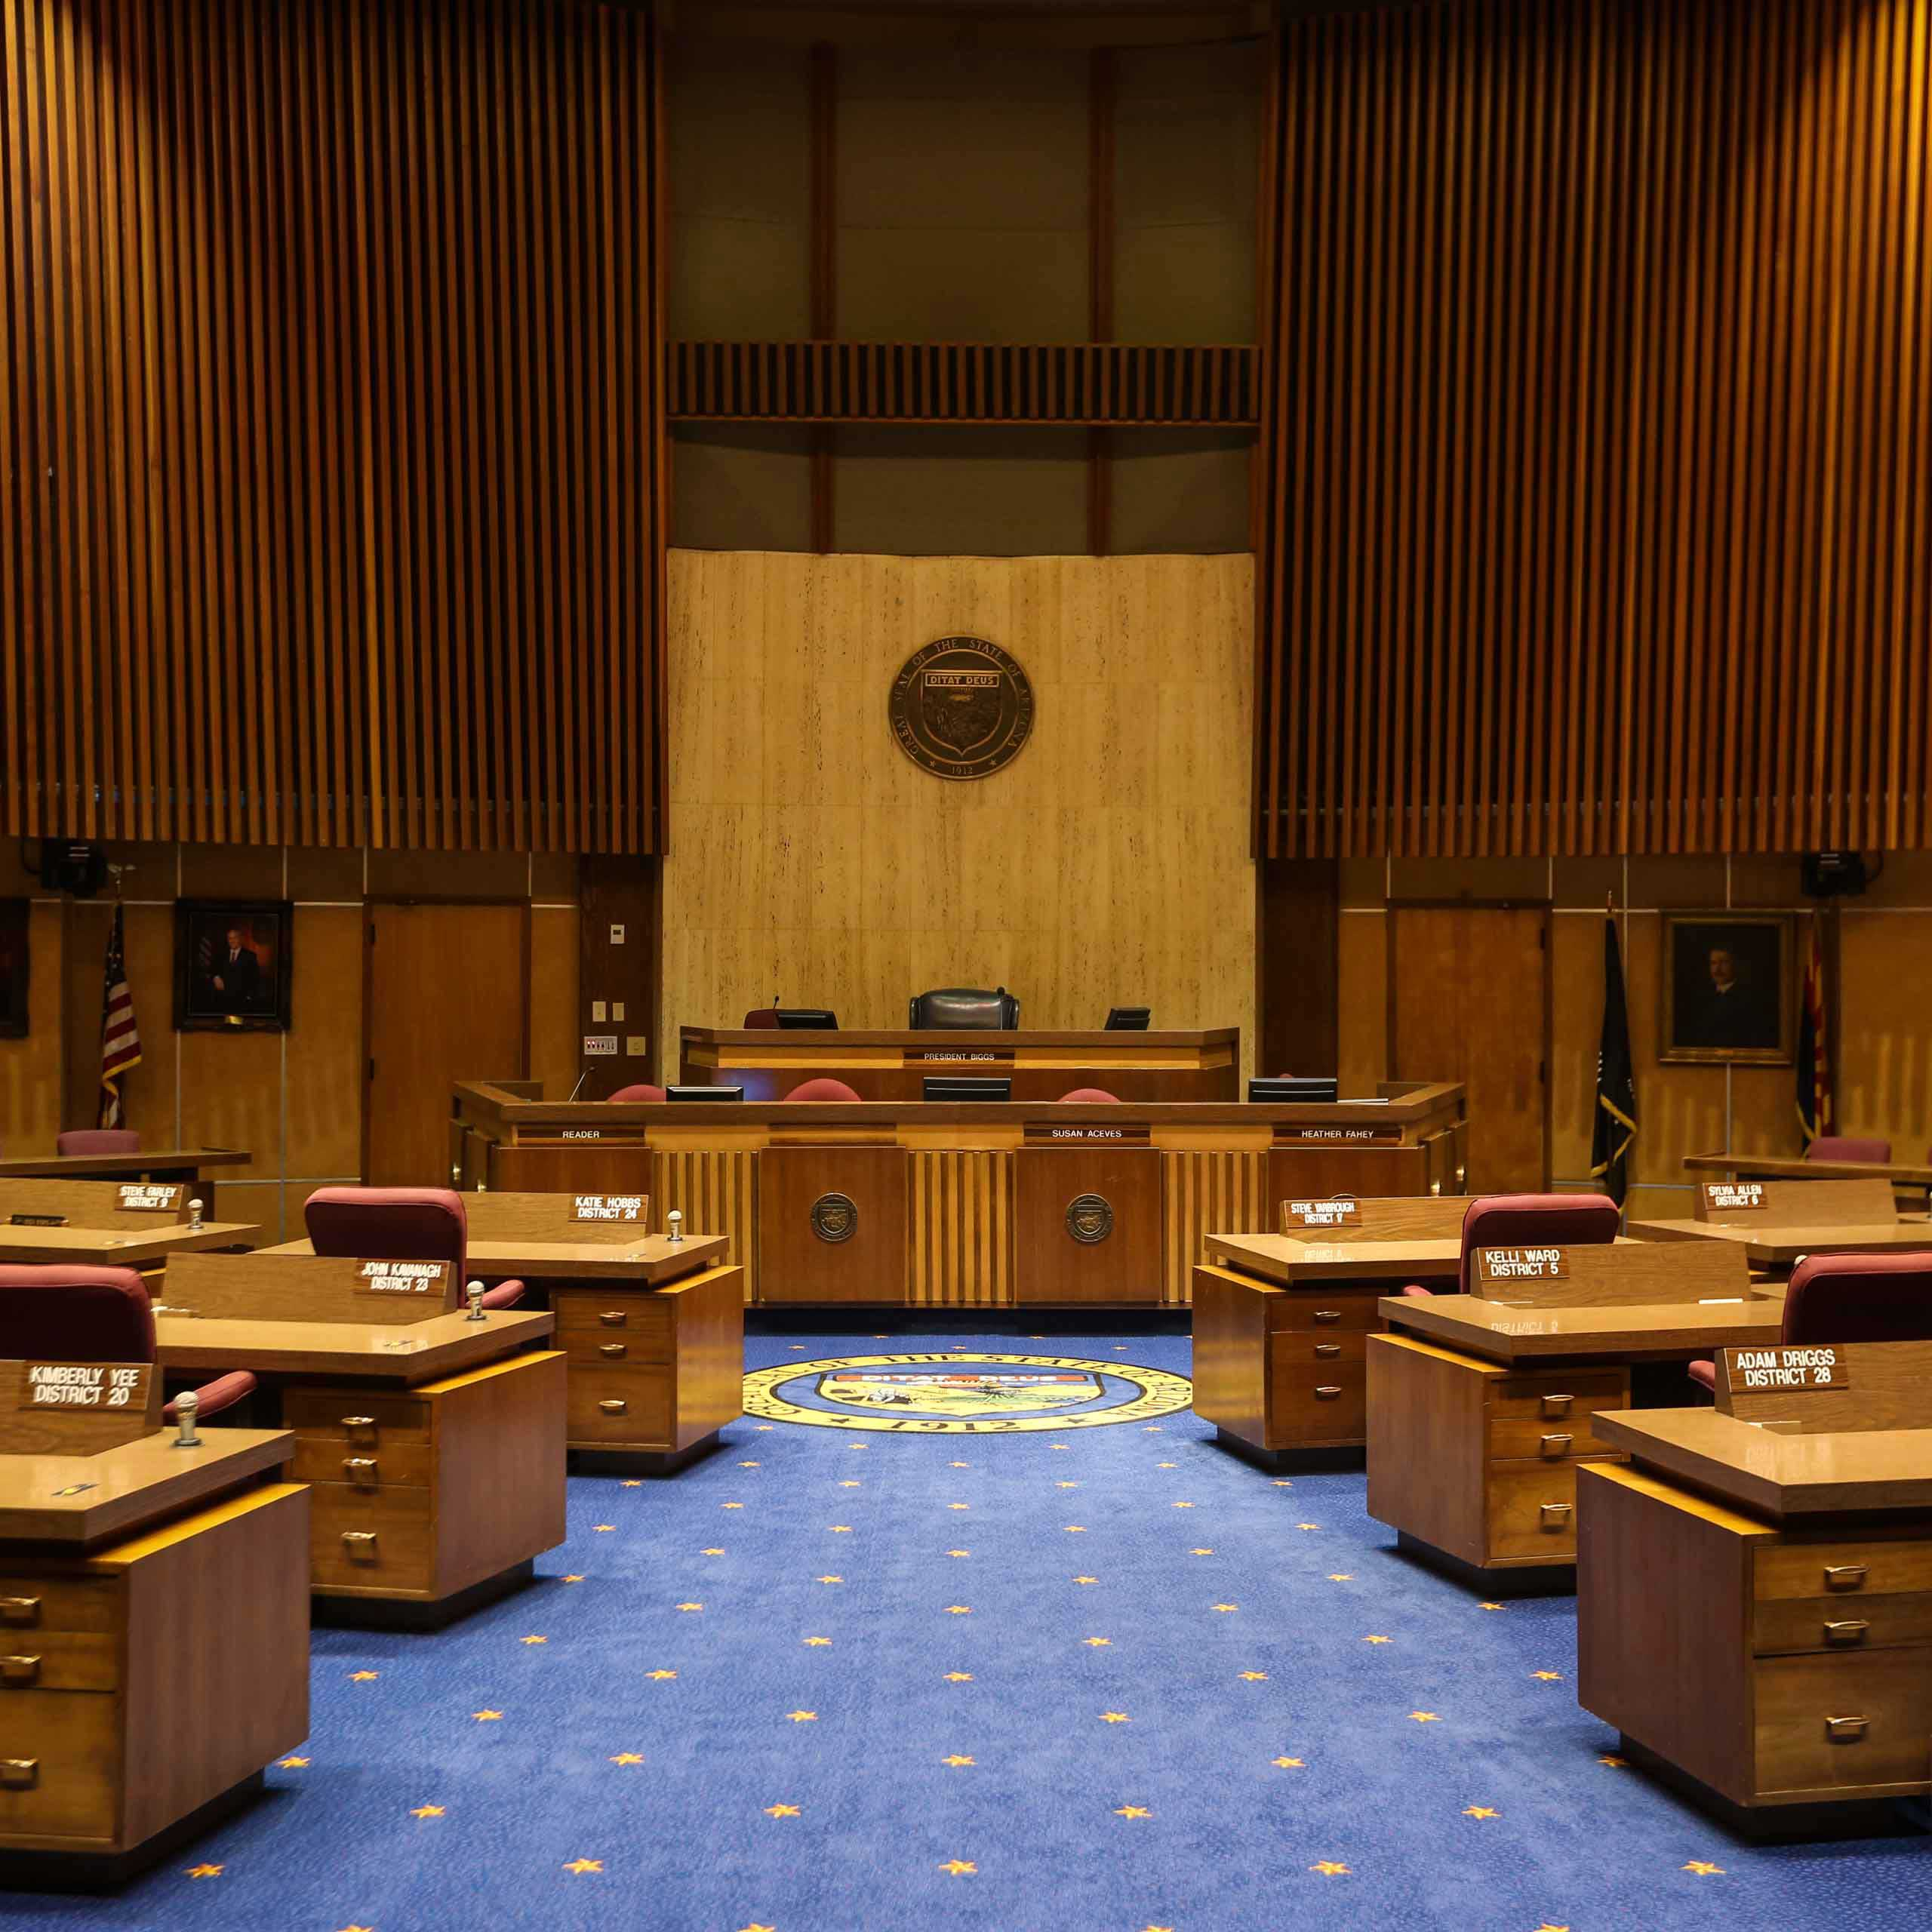 The new Arizona State Senate Chambers were dedicated on March 7th, 1960.